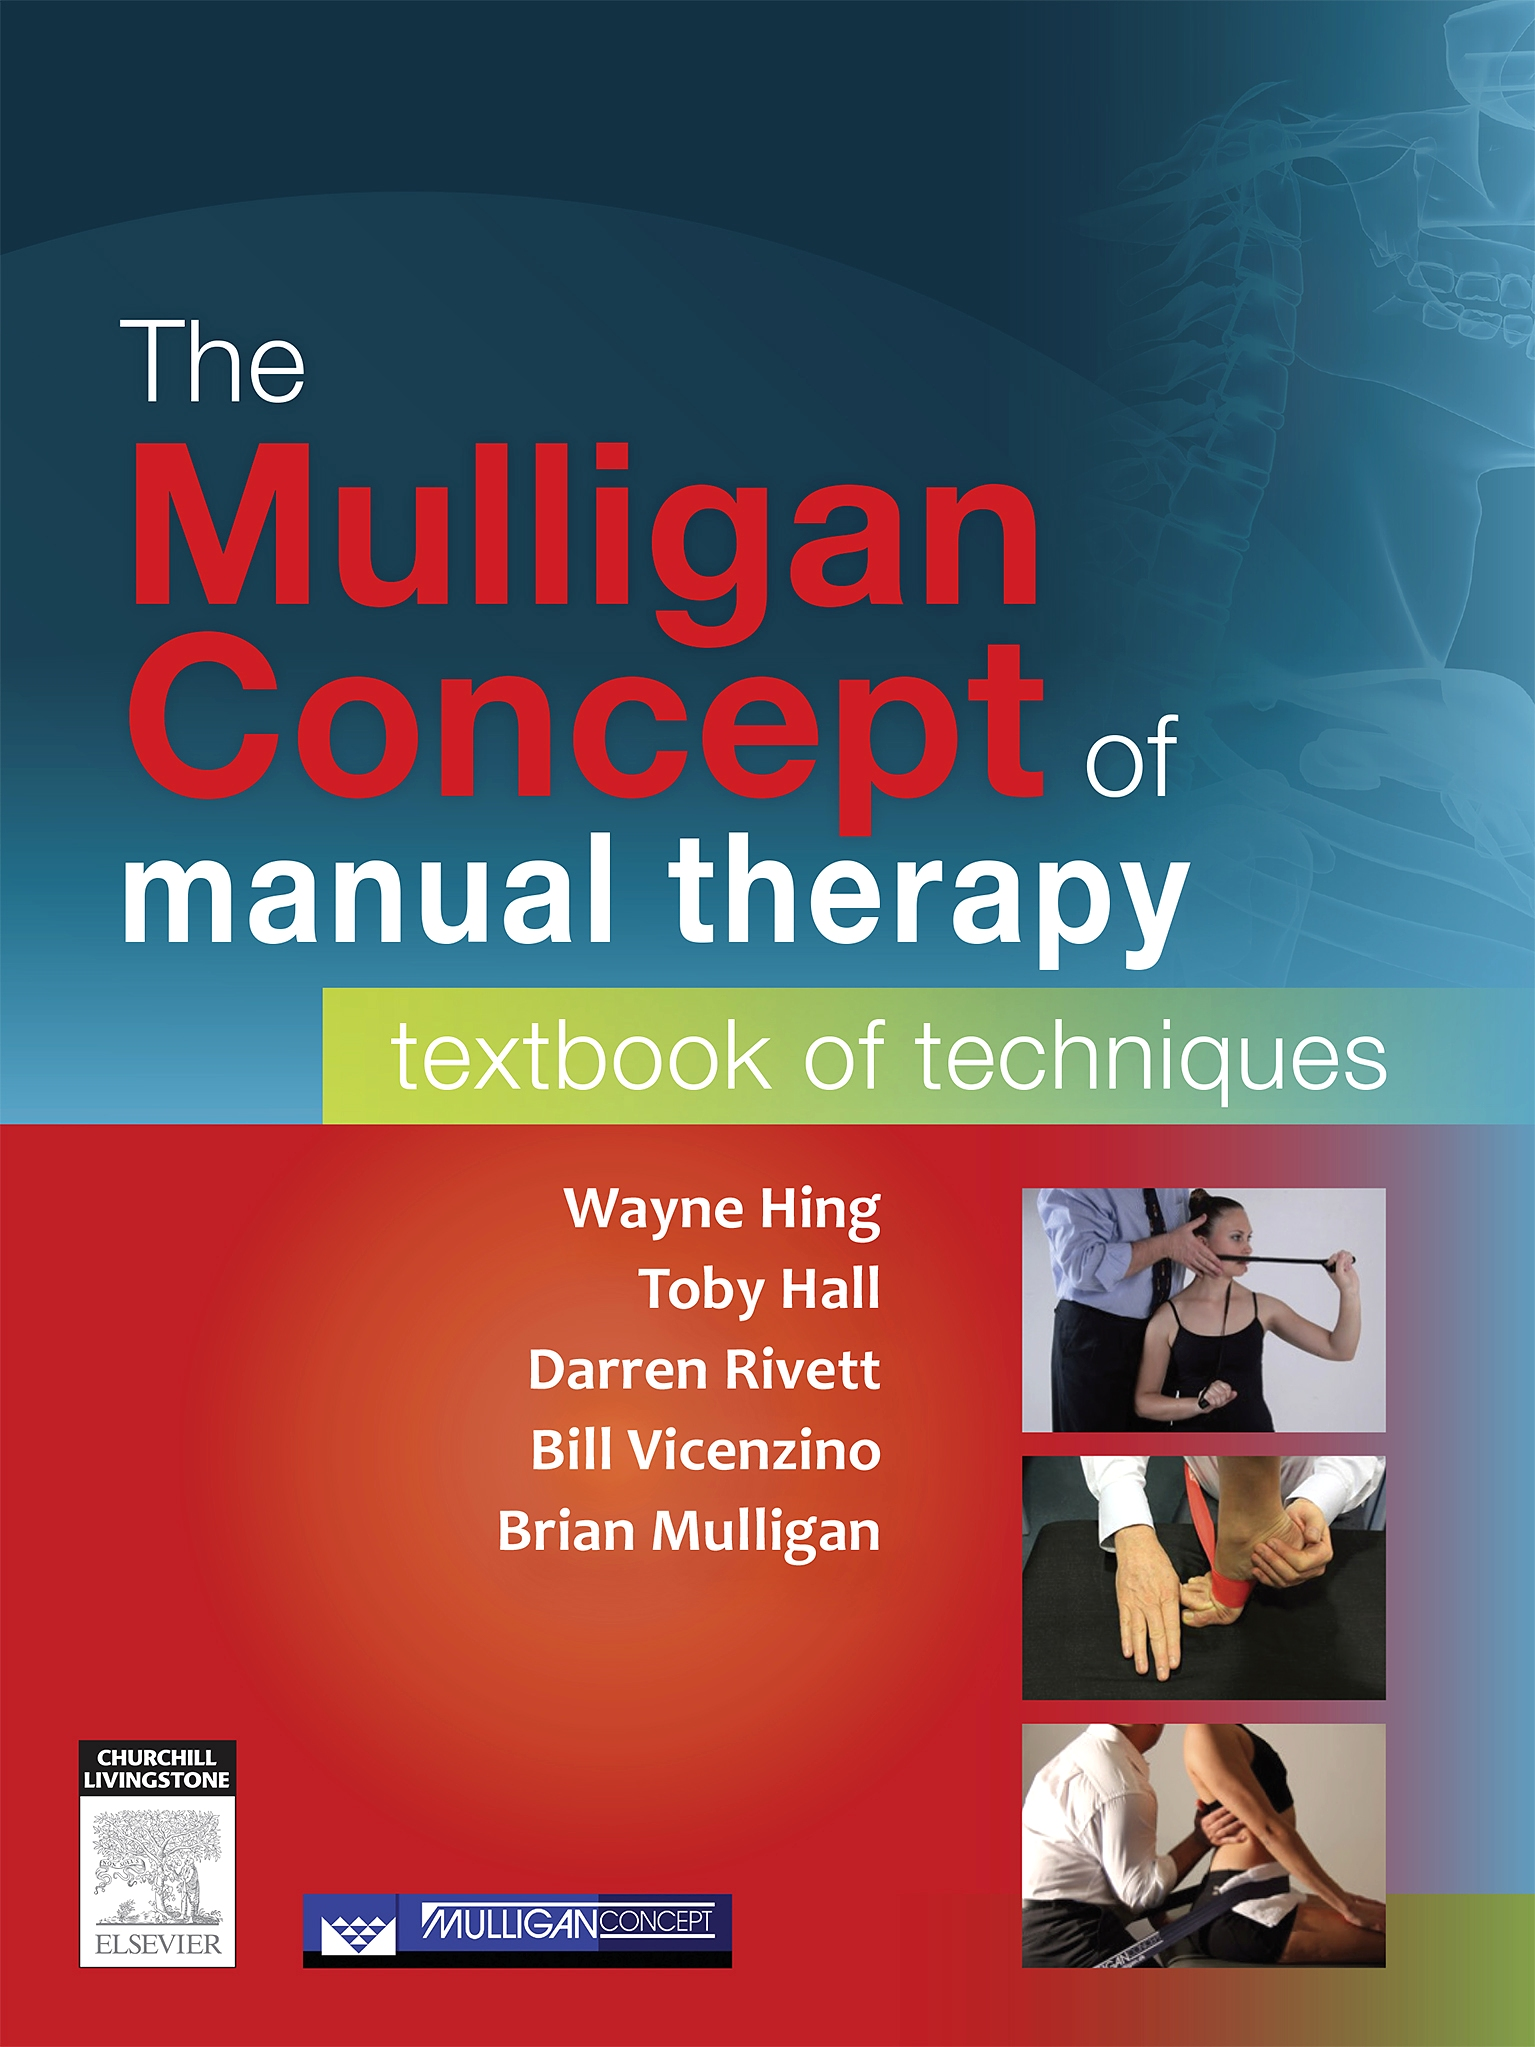 The Mulligan Concept of Manual Therapy: Textbook of Techniques, 1e by Wayne Hing PhD  MSc(Hons)  ADP(OMT)  DipMT  DipPhys  FNZCP, ISBN: 9780729541596